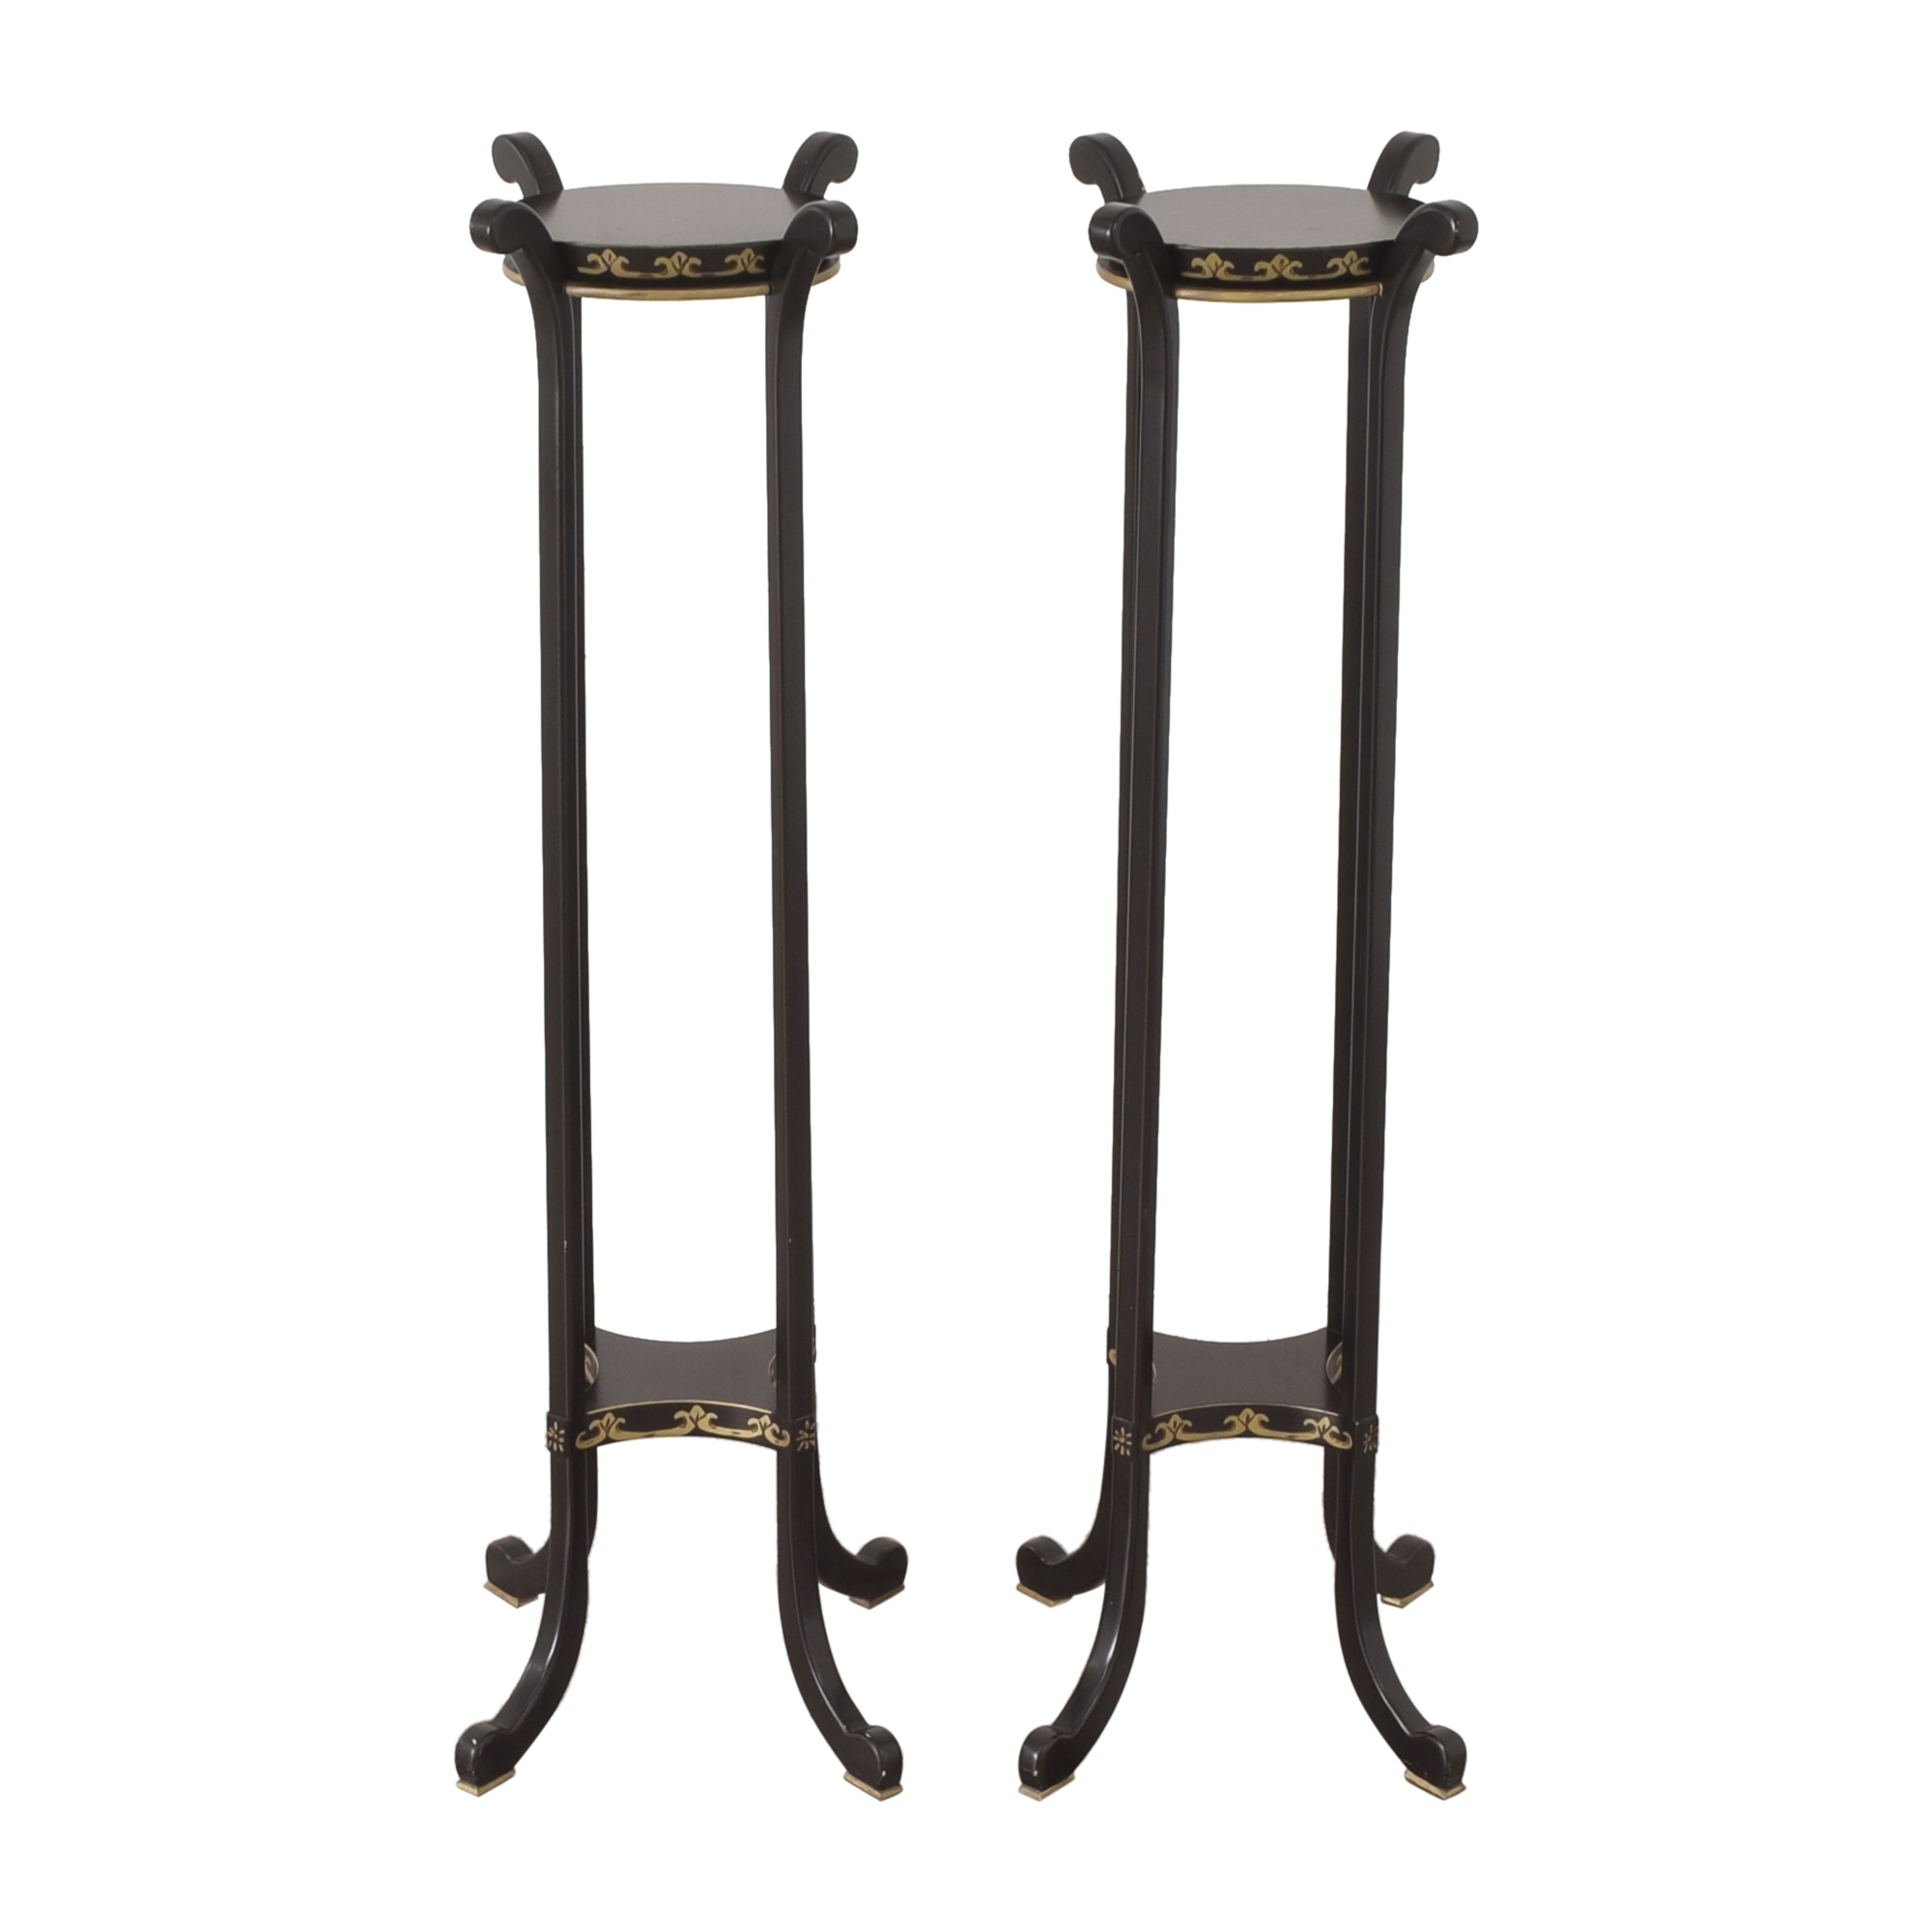 Maitland-Smith Maitland-Smith Decorative Plant Stands